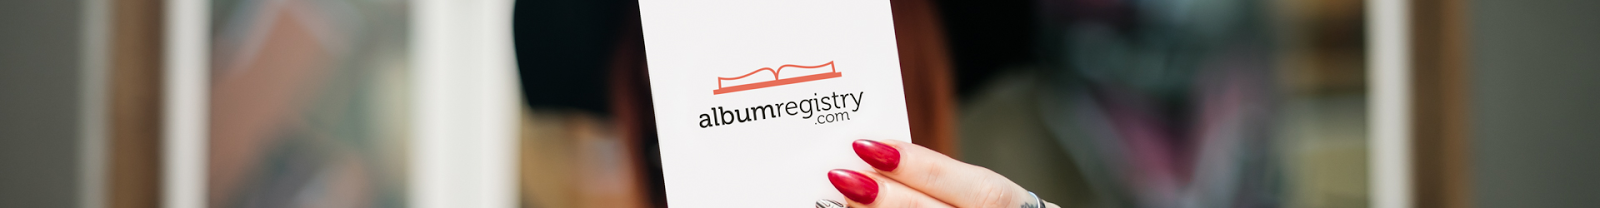 album registry wide banner image